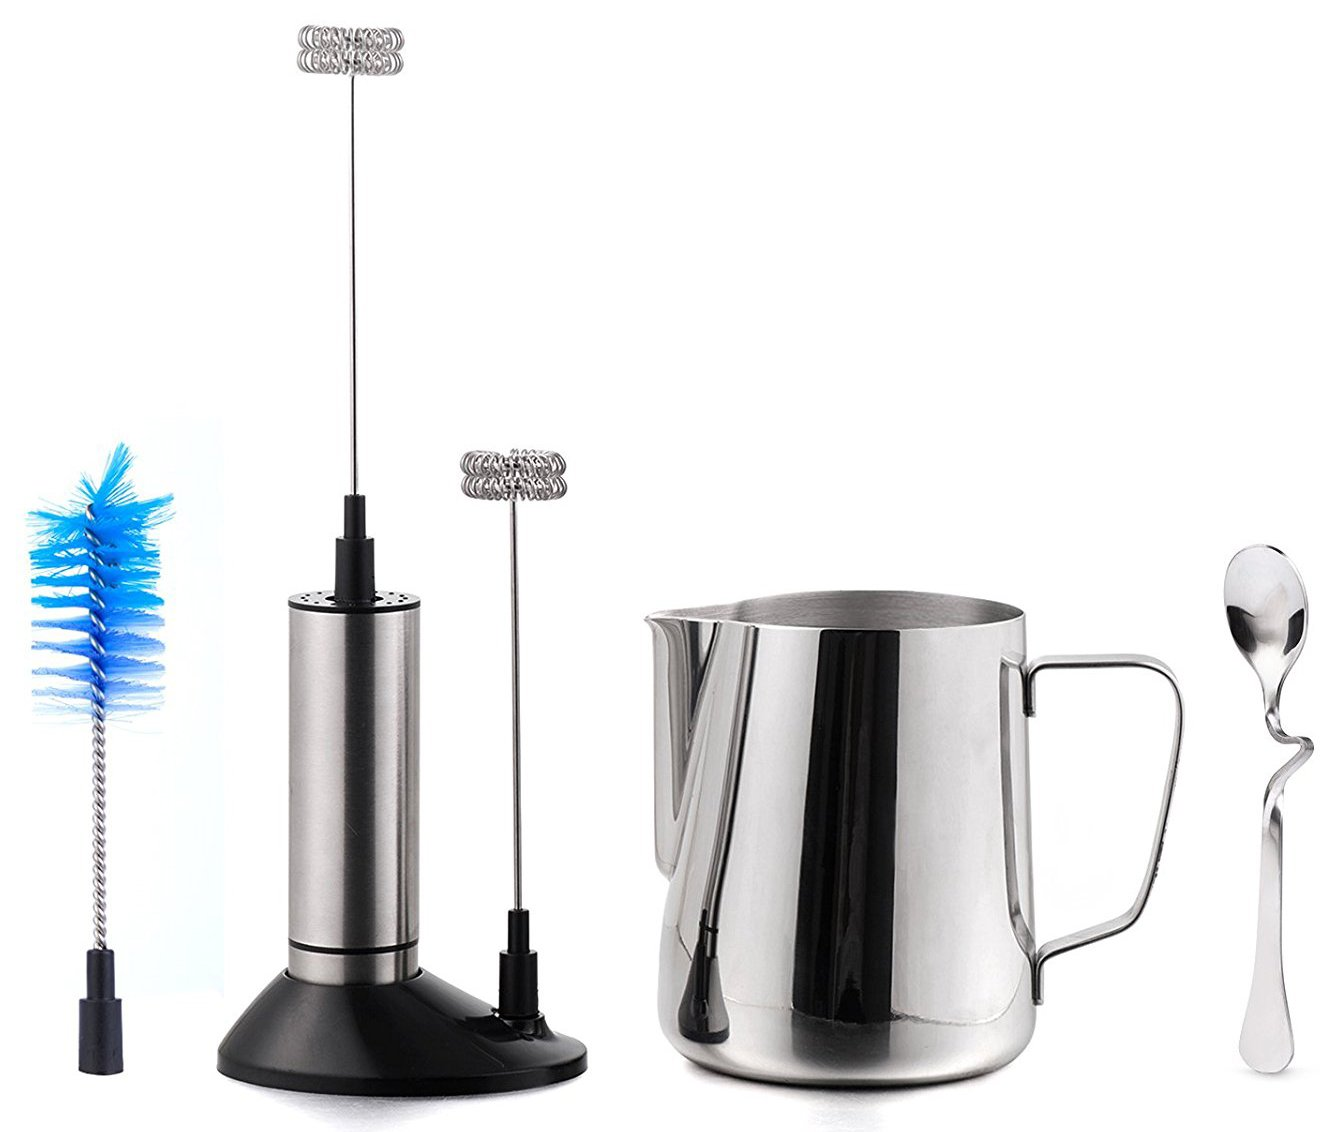 Milk Frother Set - Handheld Electric Foam Maker With Additional Double Spring Whisk Head + Food Grade 304 Stainless Steel Cup Frothing Pitcher Jug 20 Oz (600 ml) + Bent Milk Tea Coffee Spoon